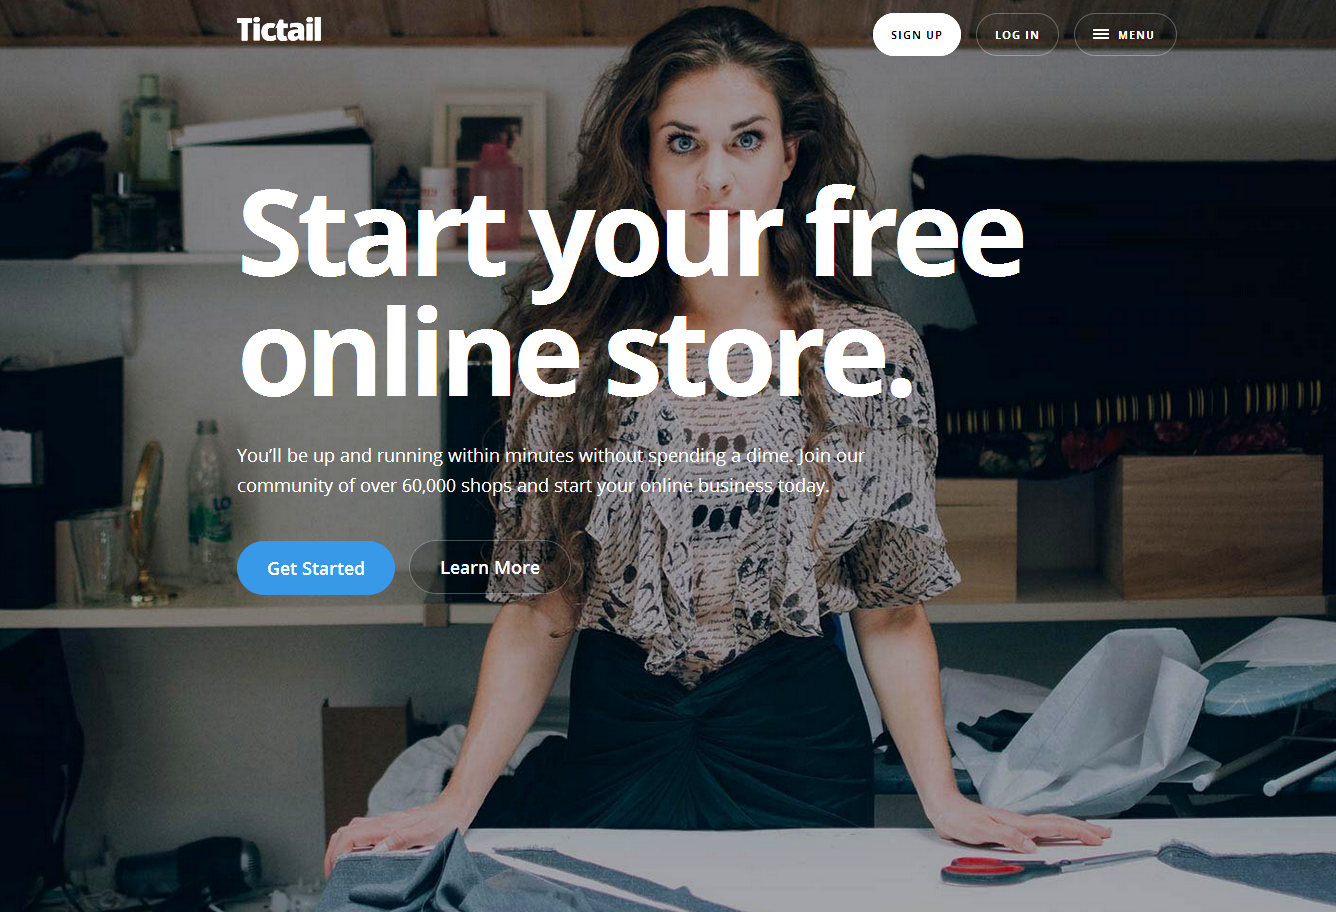 http://www.smallbusines.co.uk/2014/12/tictail-start-your-free-online-store.html